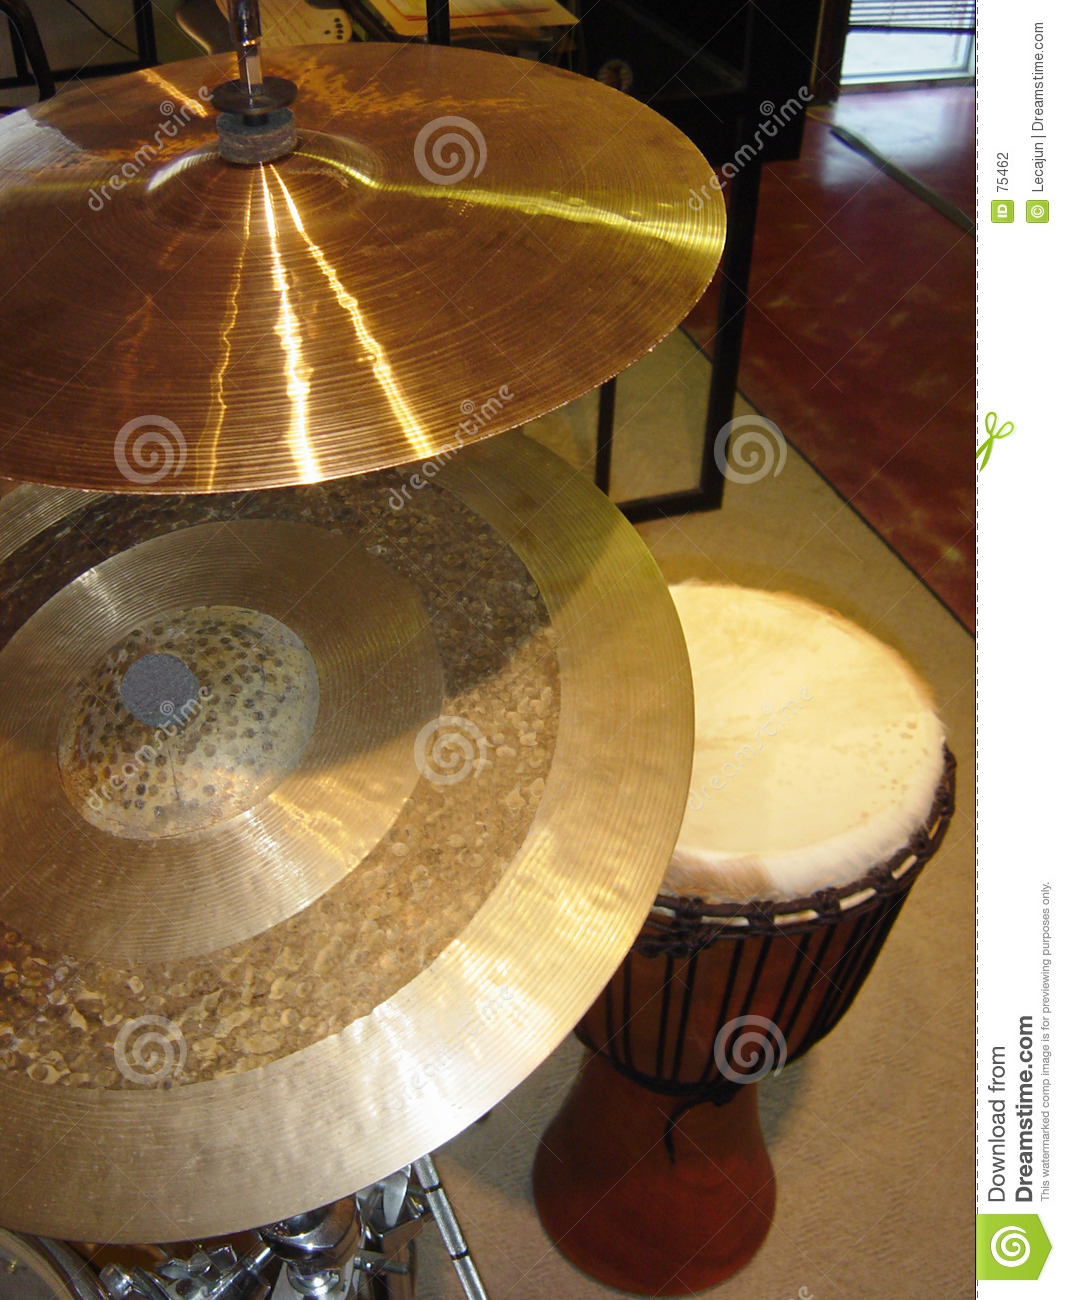 Tambours des cymbales N